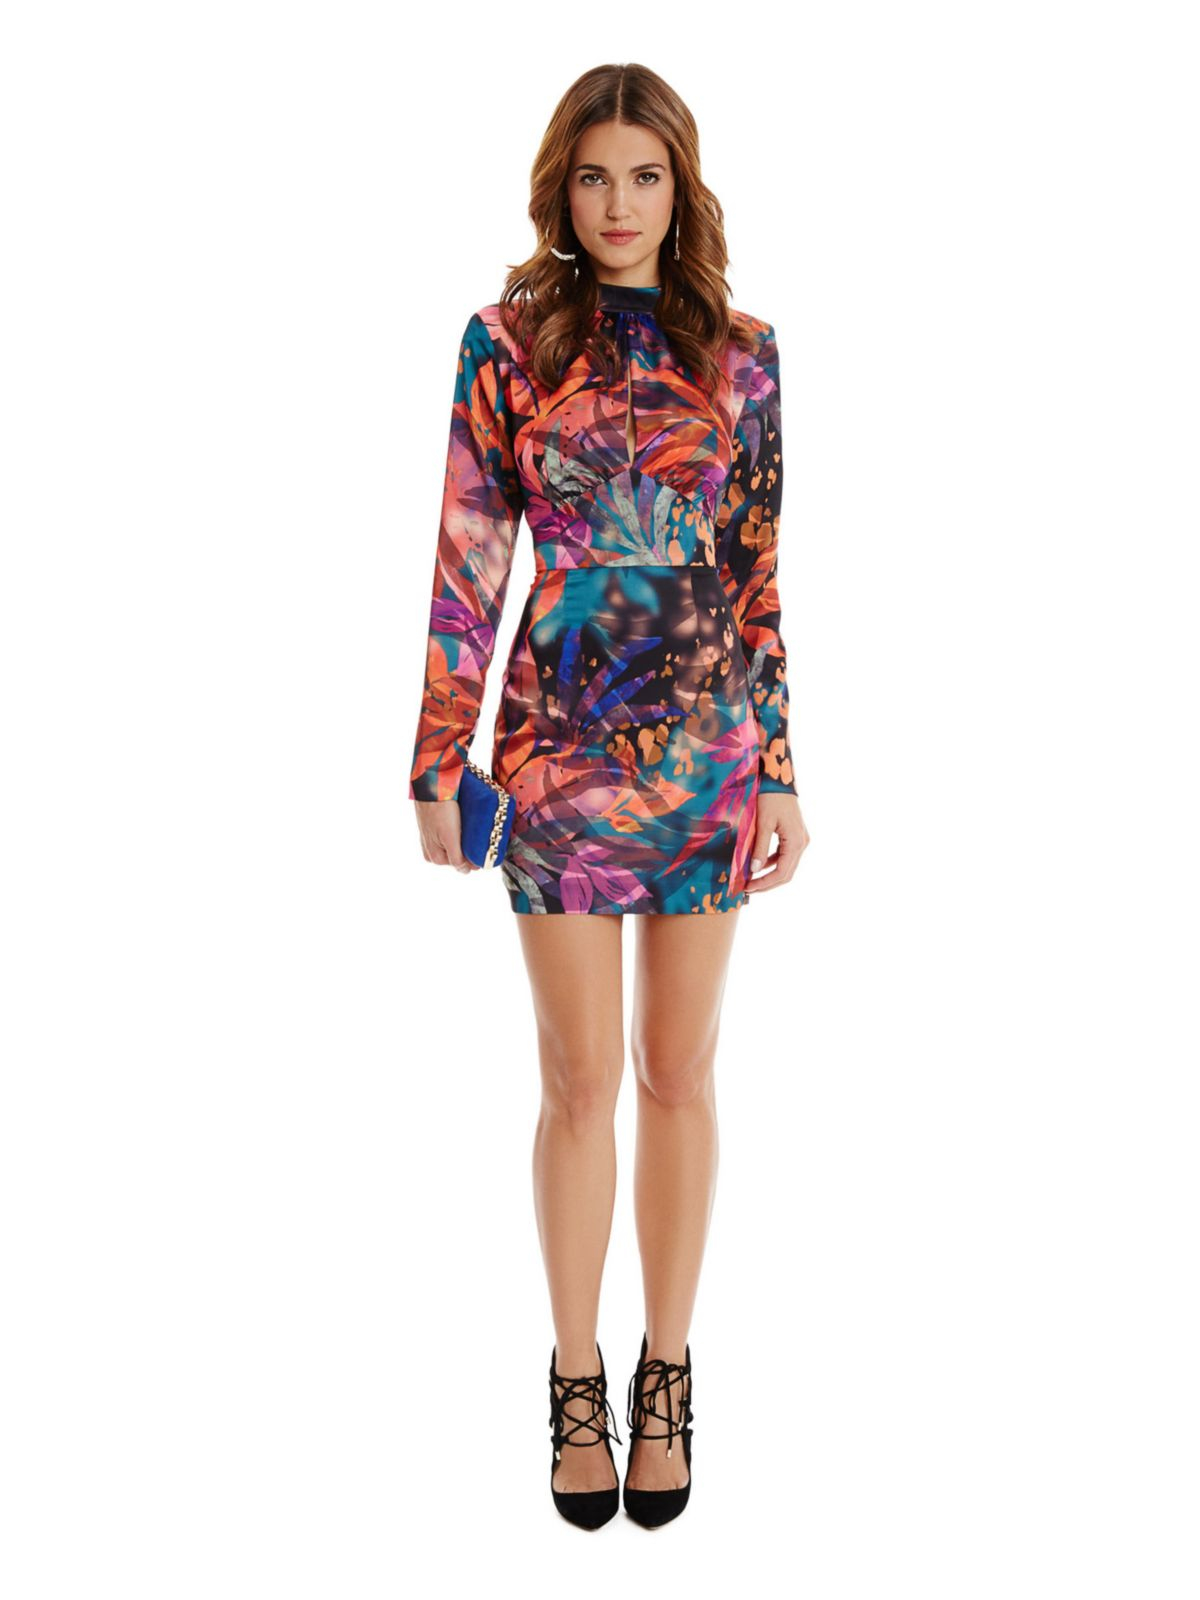 Guess By Marciano Floral Dress